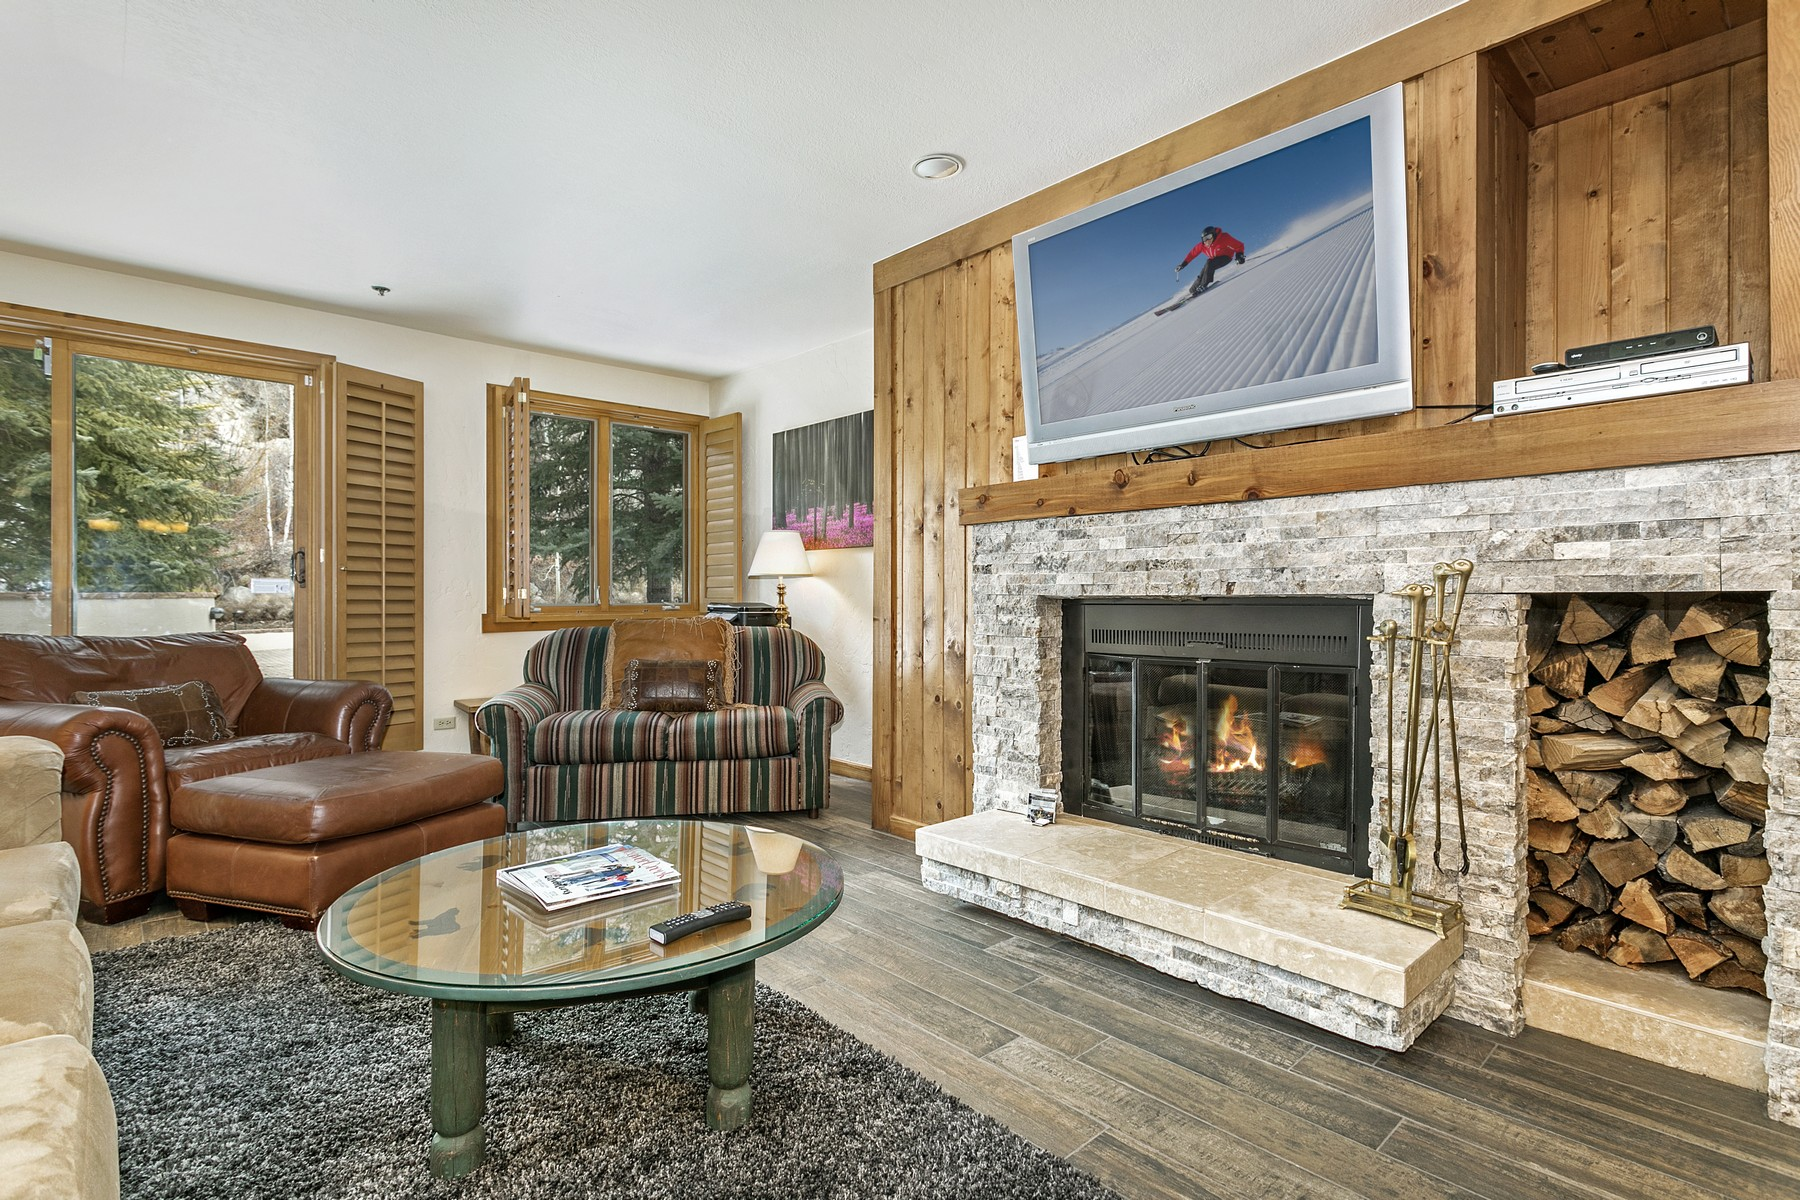 Condominium for Active at Turn-Key Beaver Creek Condo Overlooking Pool Deck 311 Offerson Road 234 Beaver Creek, Colorado 81620 United States